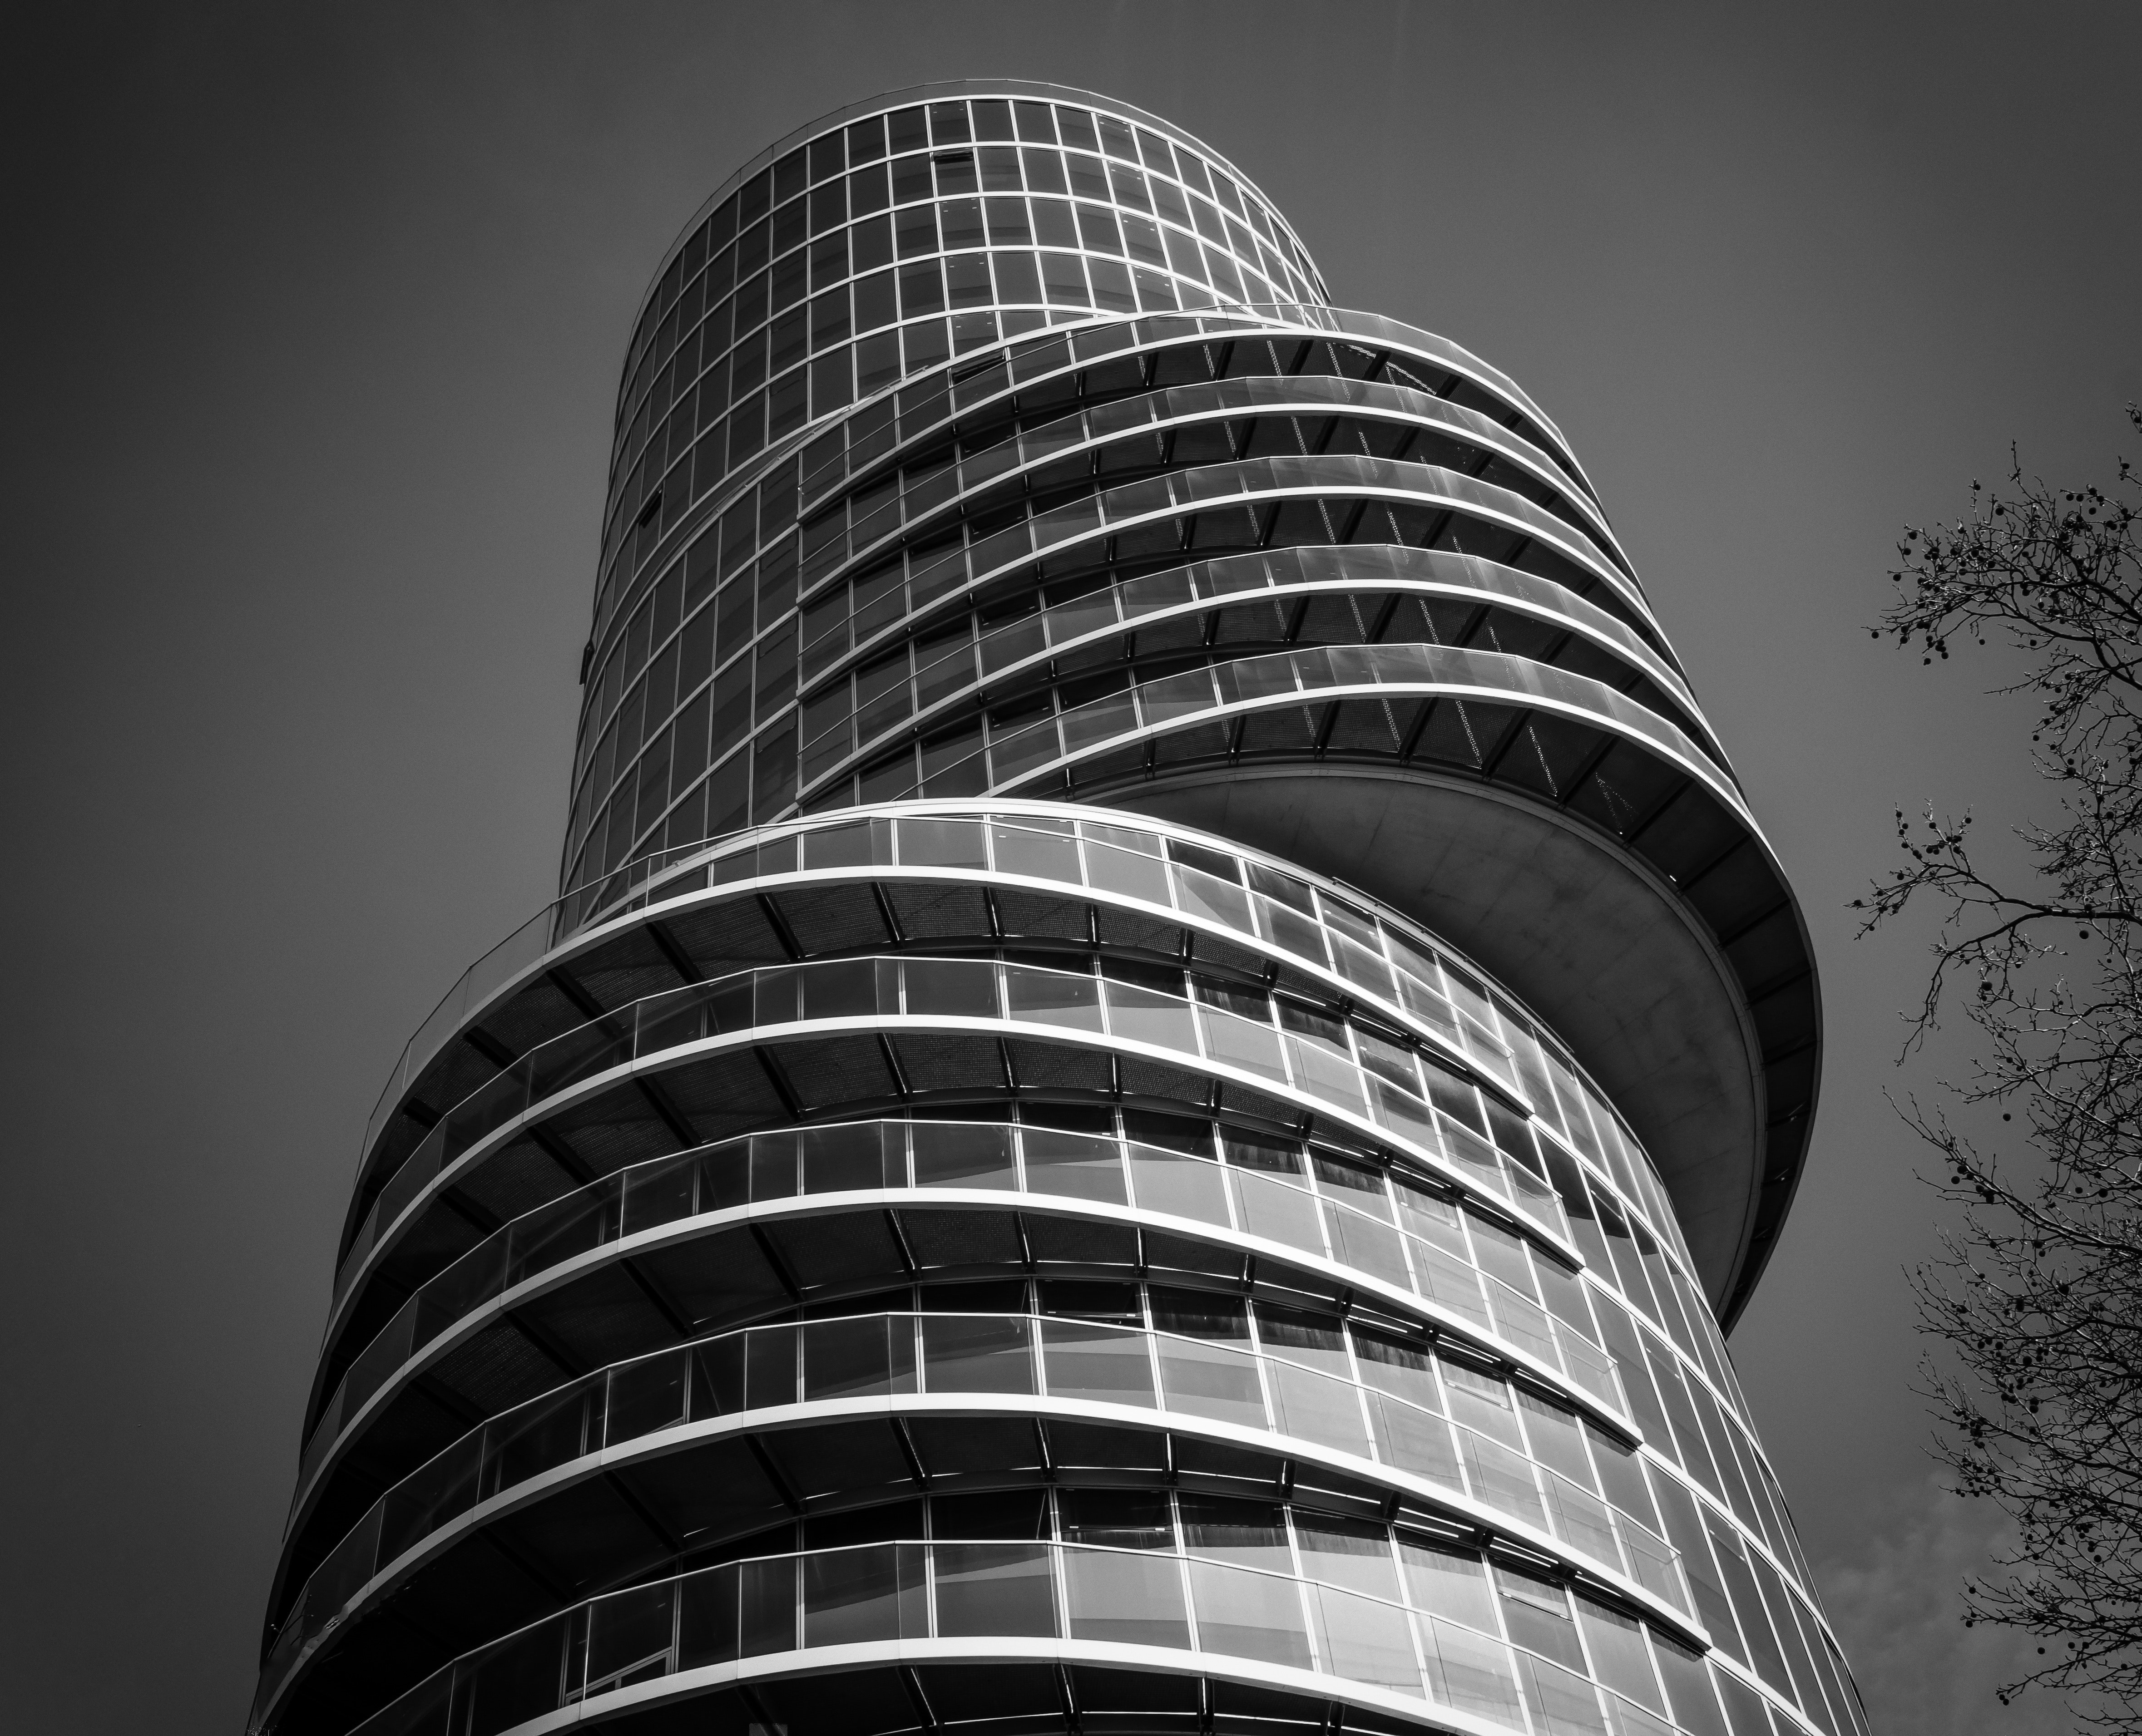 Free stock photo of architecture, black-and-white, building